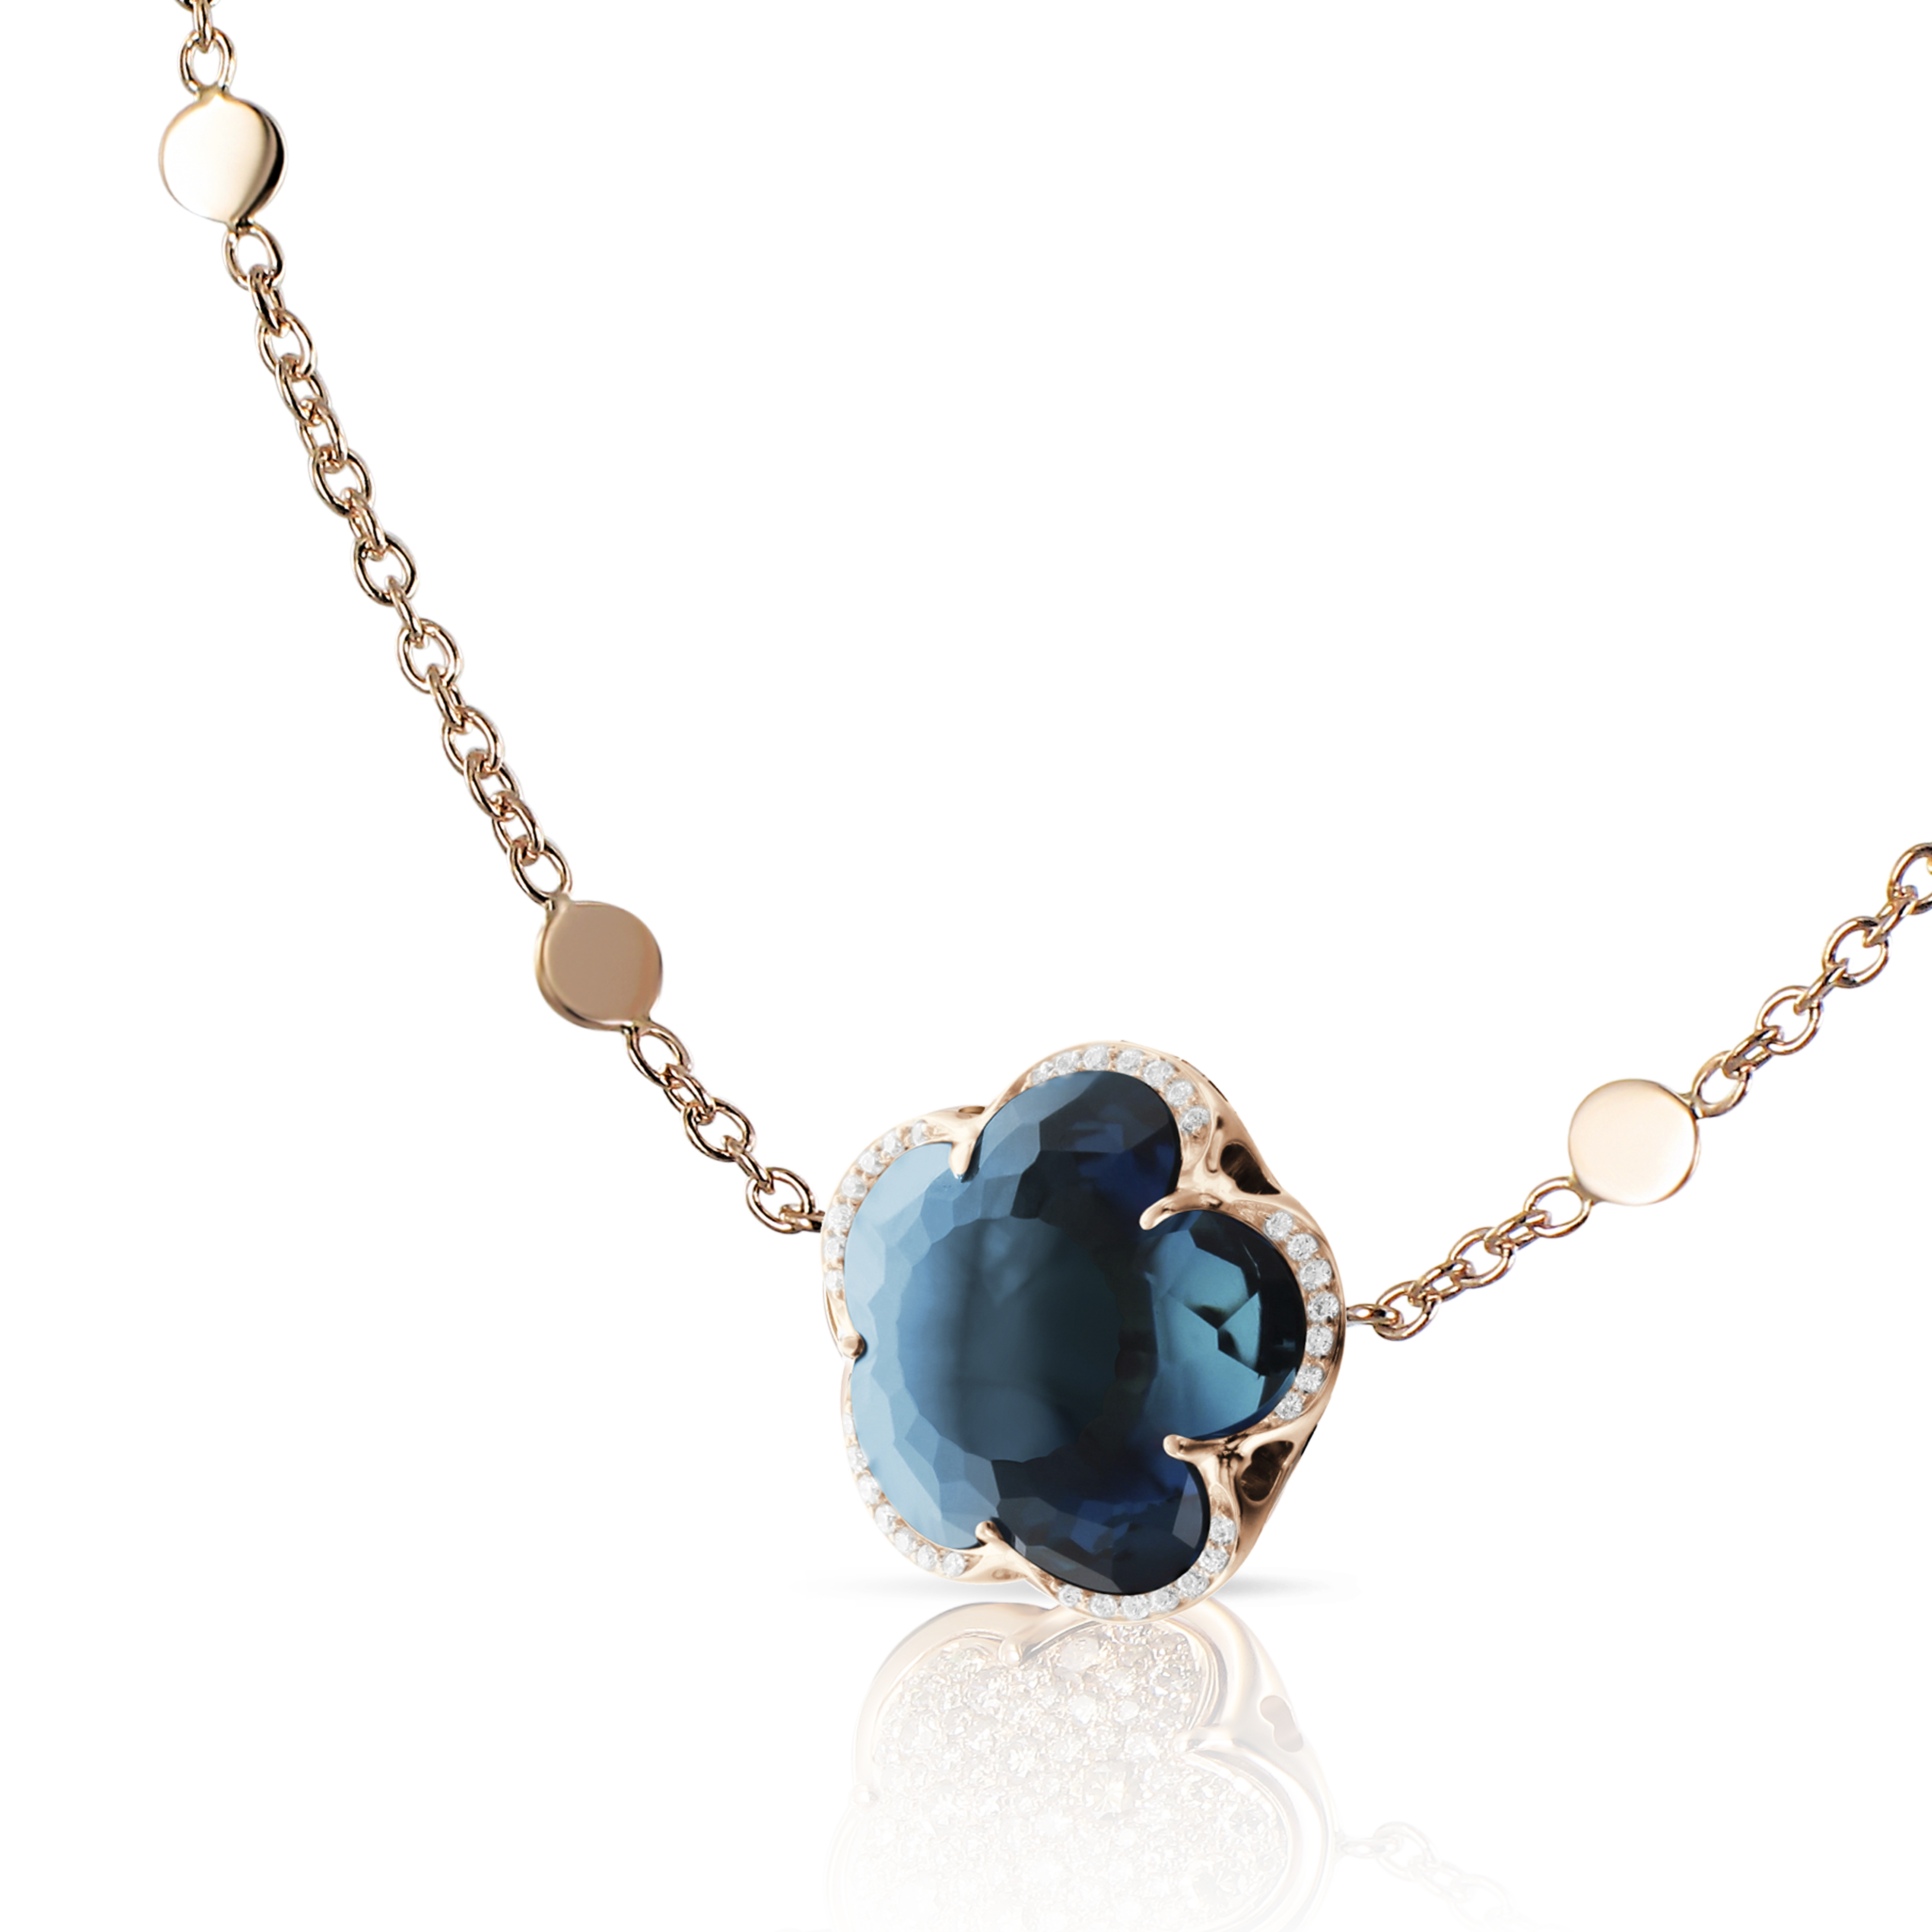 18k Rose Gold Bon Ton Necklace with London Blue Topaz and Diamonds